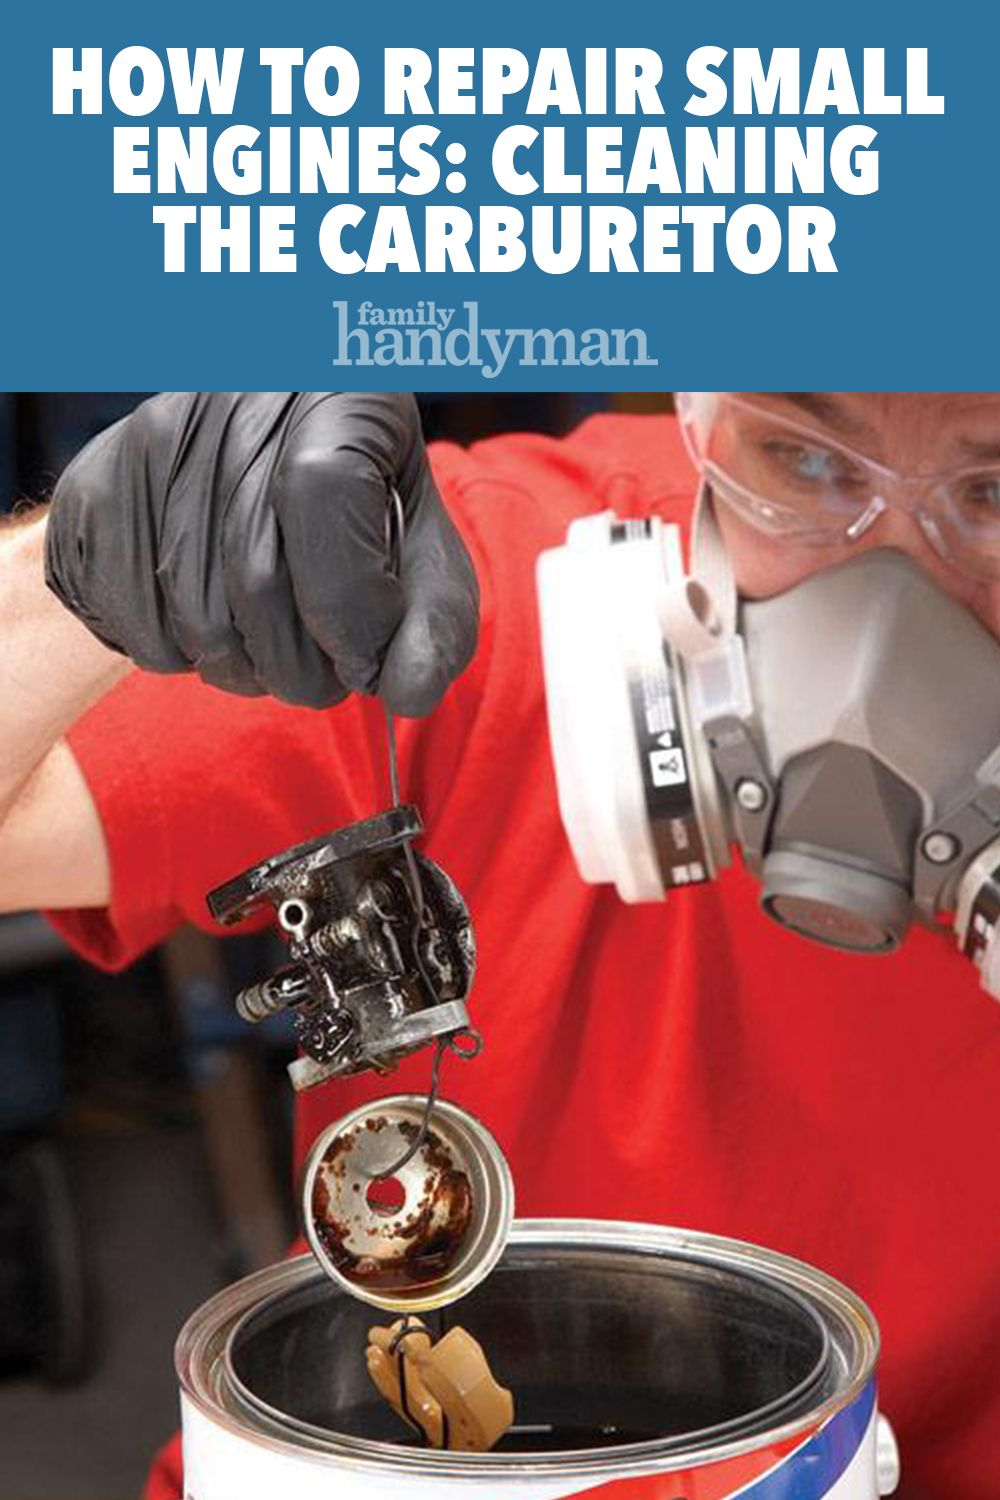 How to Repair Small Engines Cleaning the Carburetor